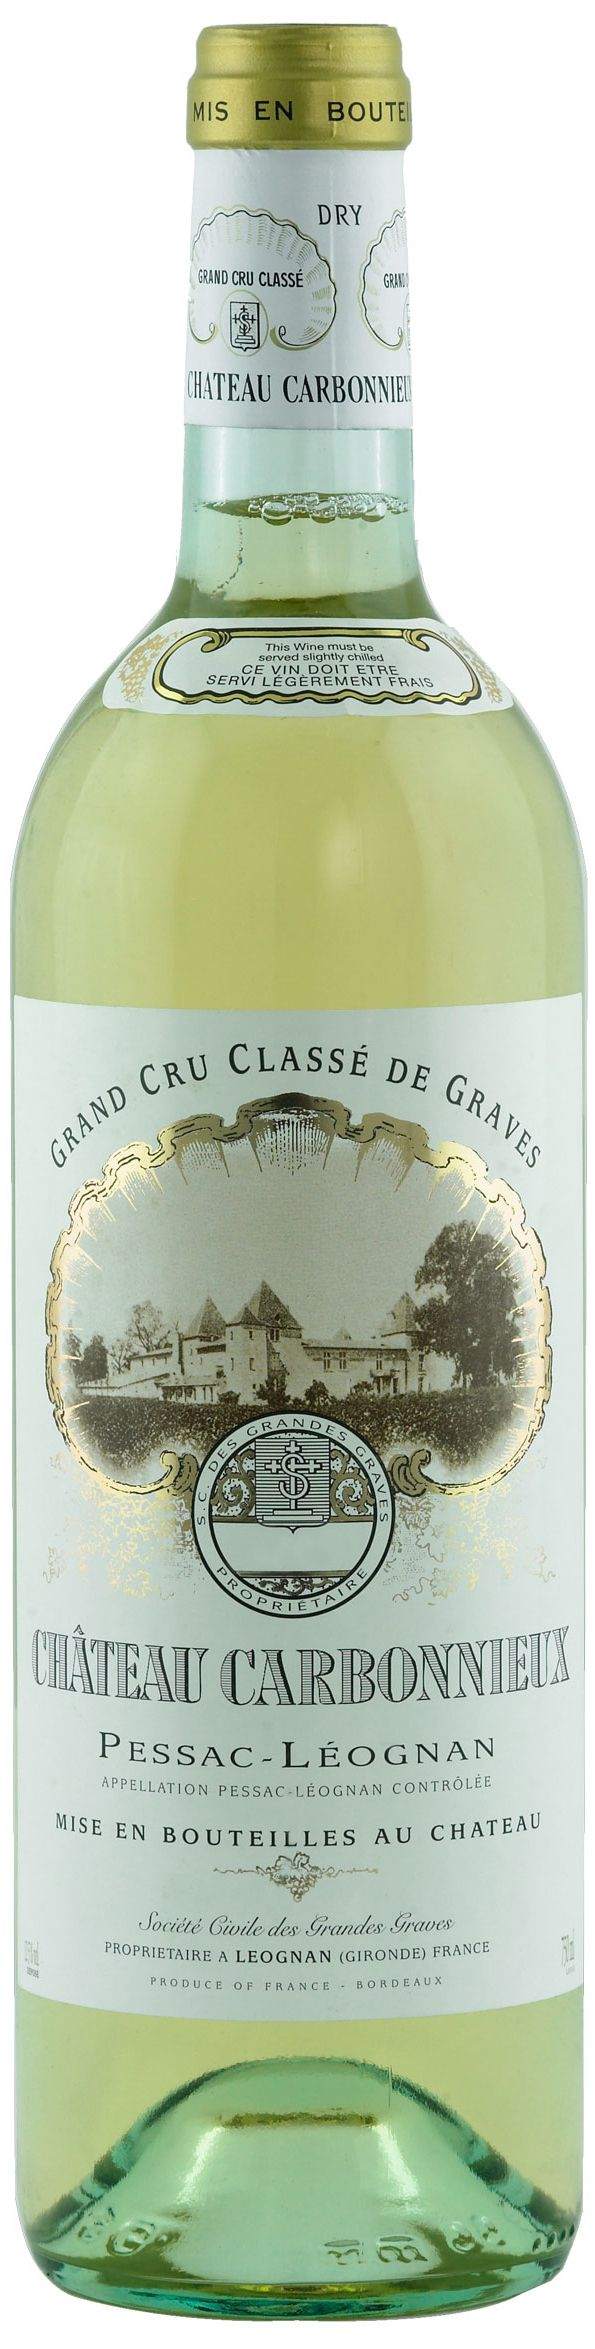 Chateau Carbonnieux, Grand Cru Classe, 2005